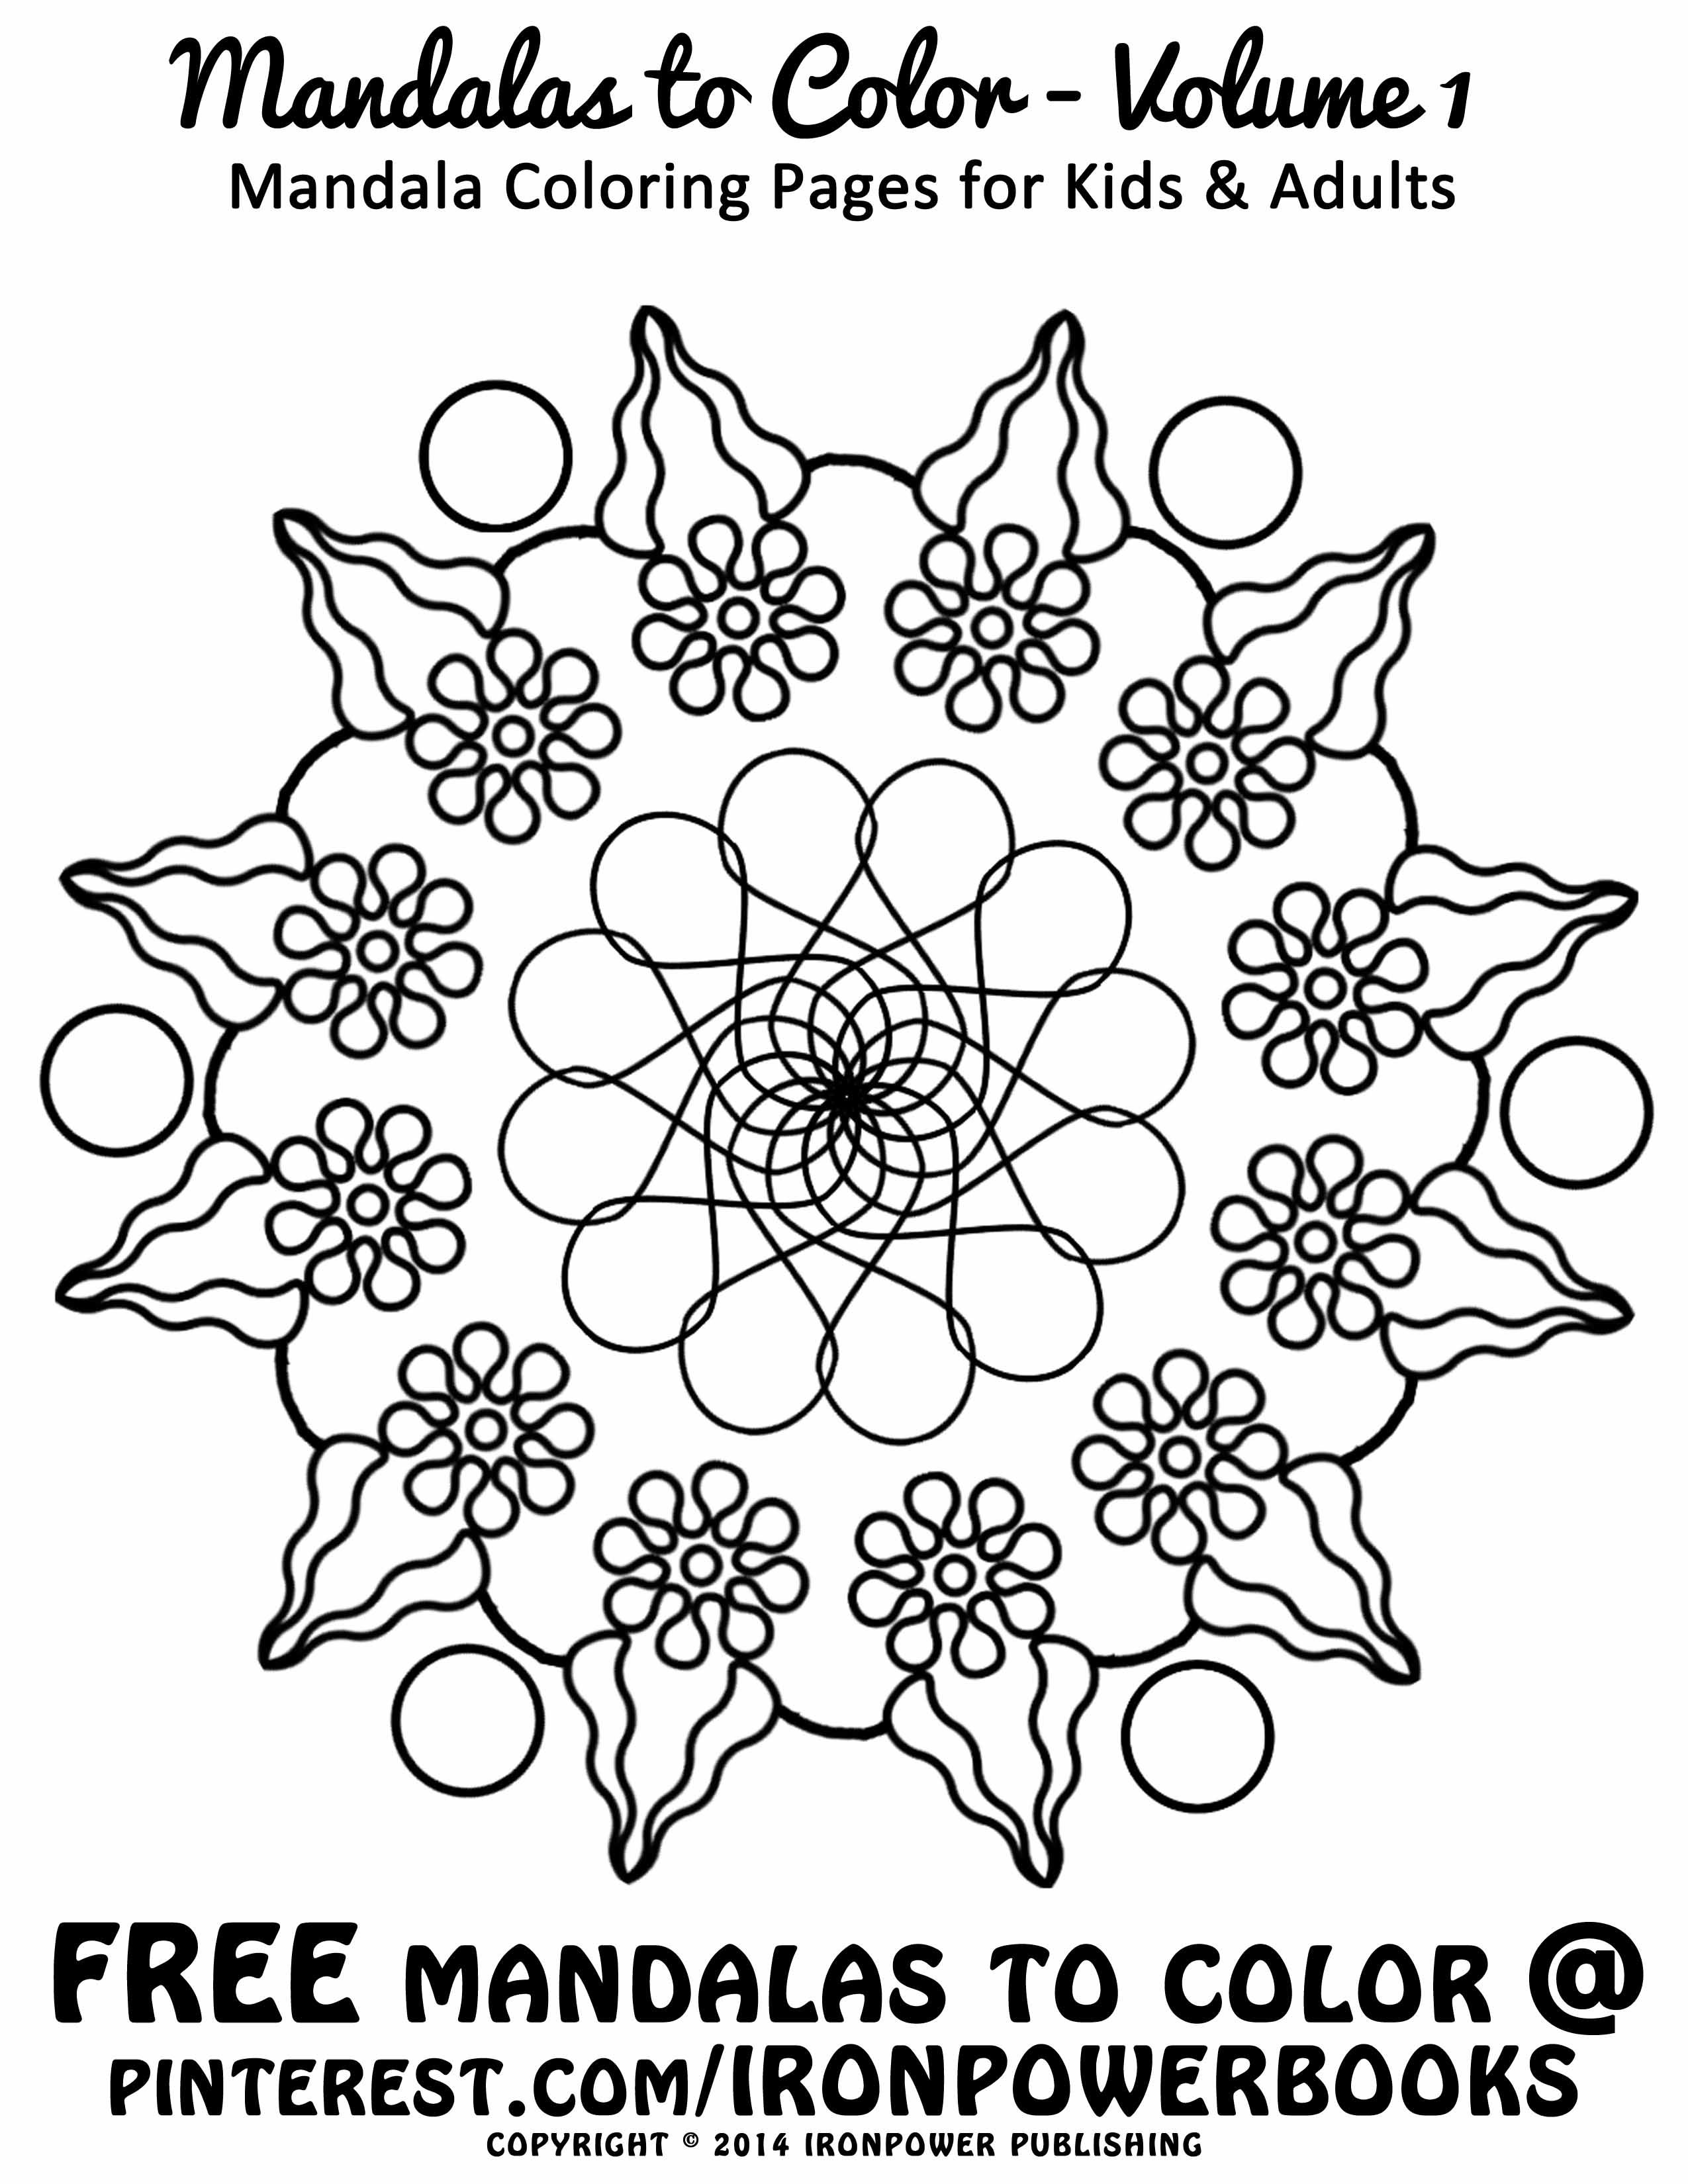 FREE Printable Art Therapy Mandala Coloring Pages for Kids and